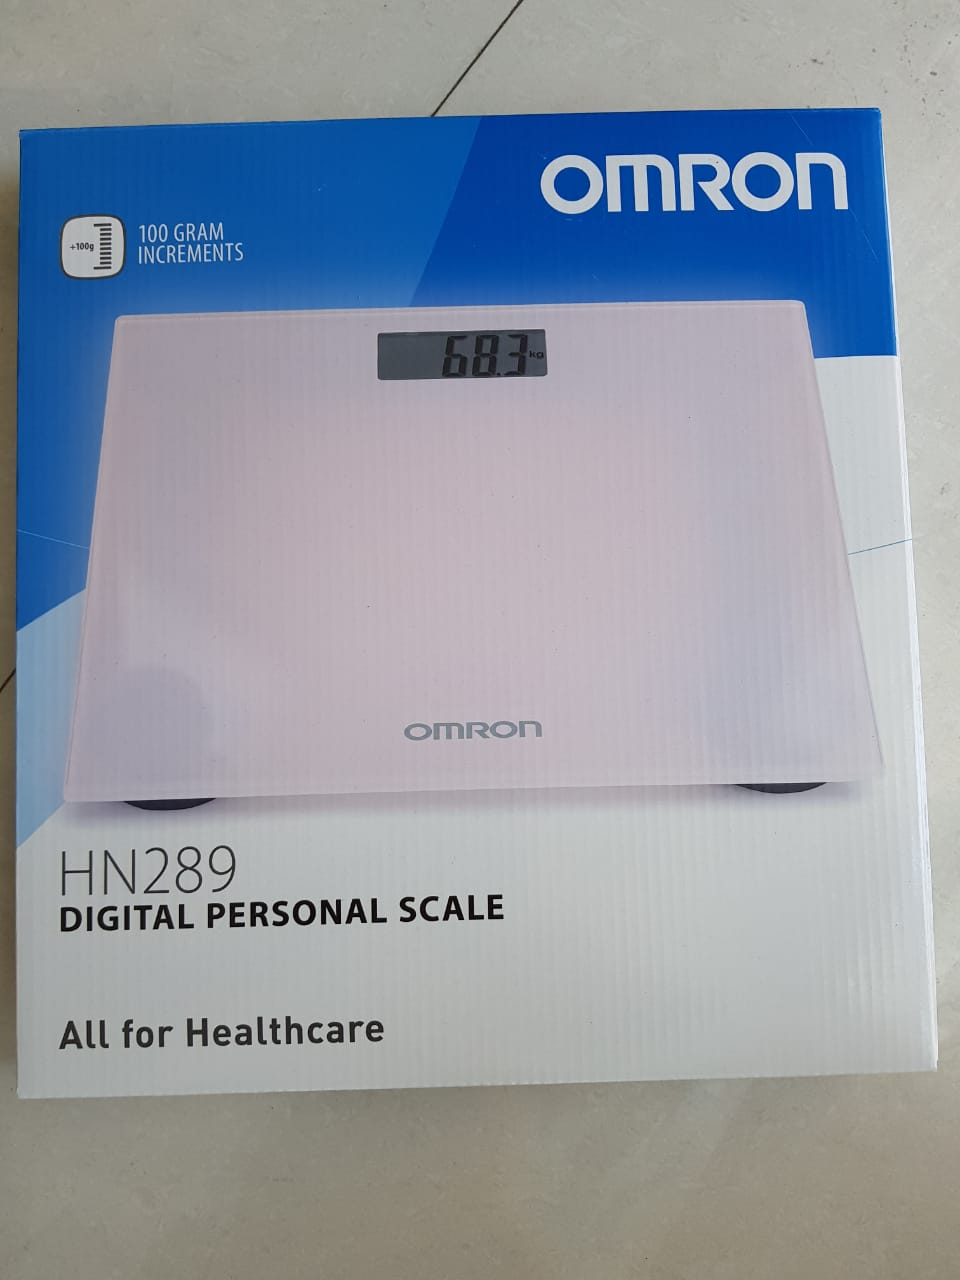 Omron HN 289 Automatic Personal Digital Weight Machine With Large LCD Display and 4 Sensor Technology For Accurate Weight Measurement